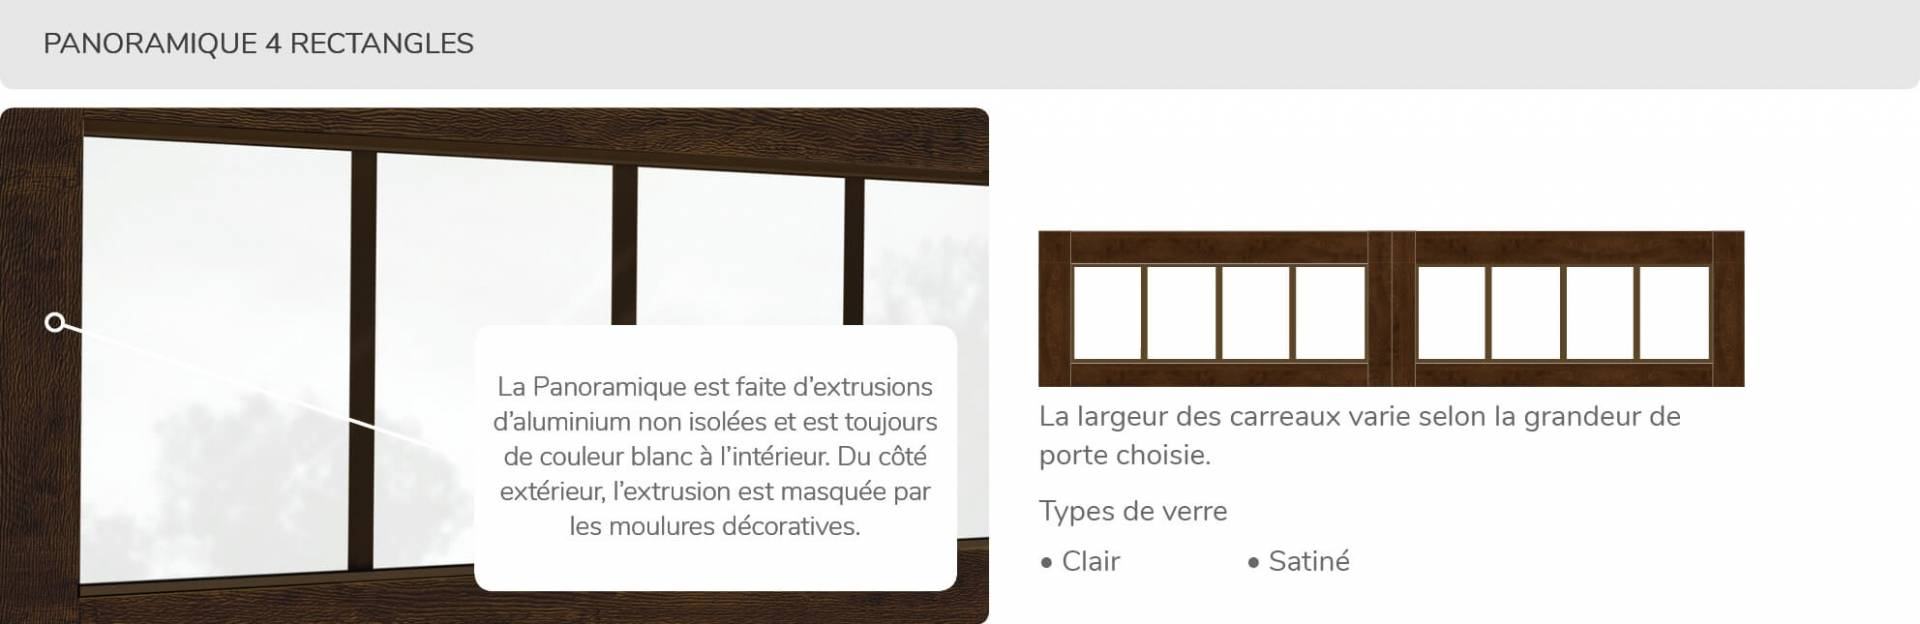 Panoramique-4 rectangles, disponible pour la porte R-16